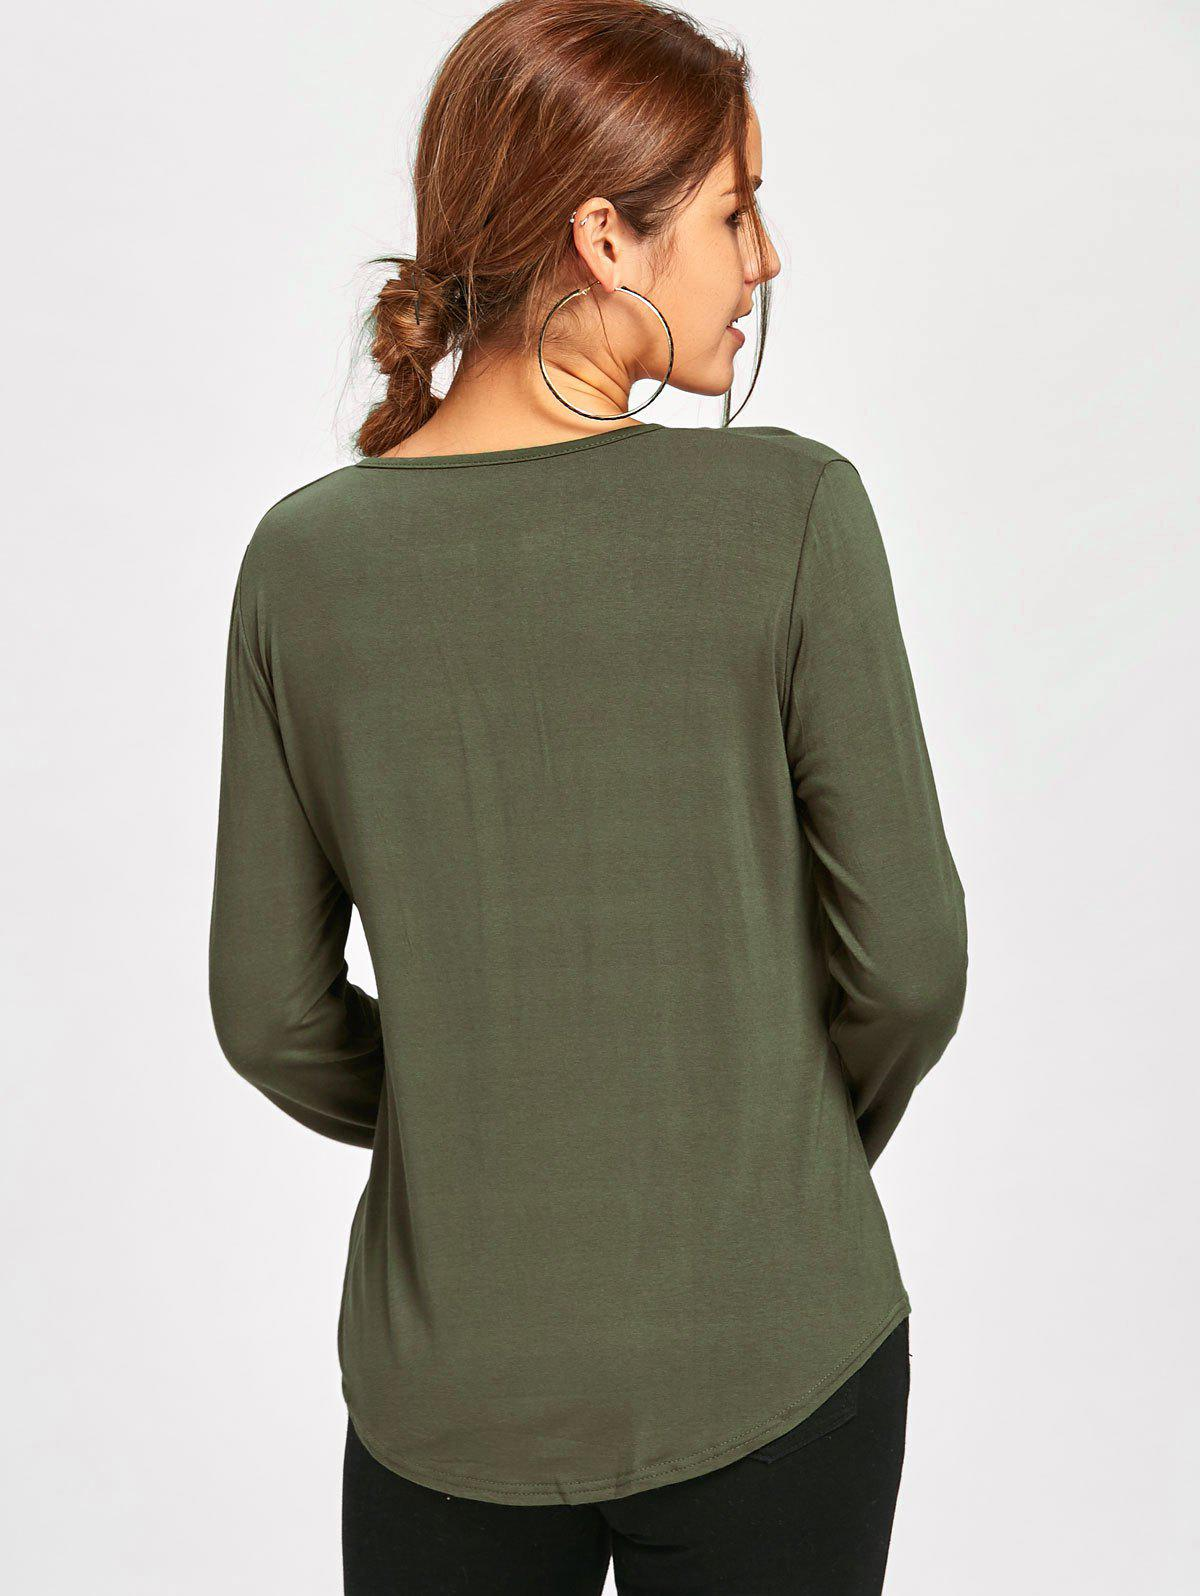 Plunge Lace Up Long Sleeve Tee - ARMY GREEN M